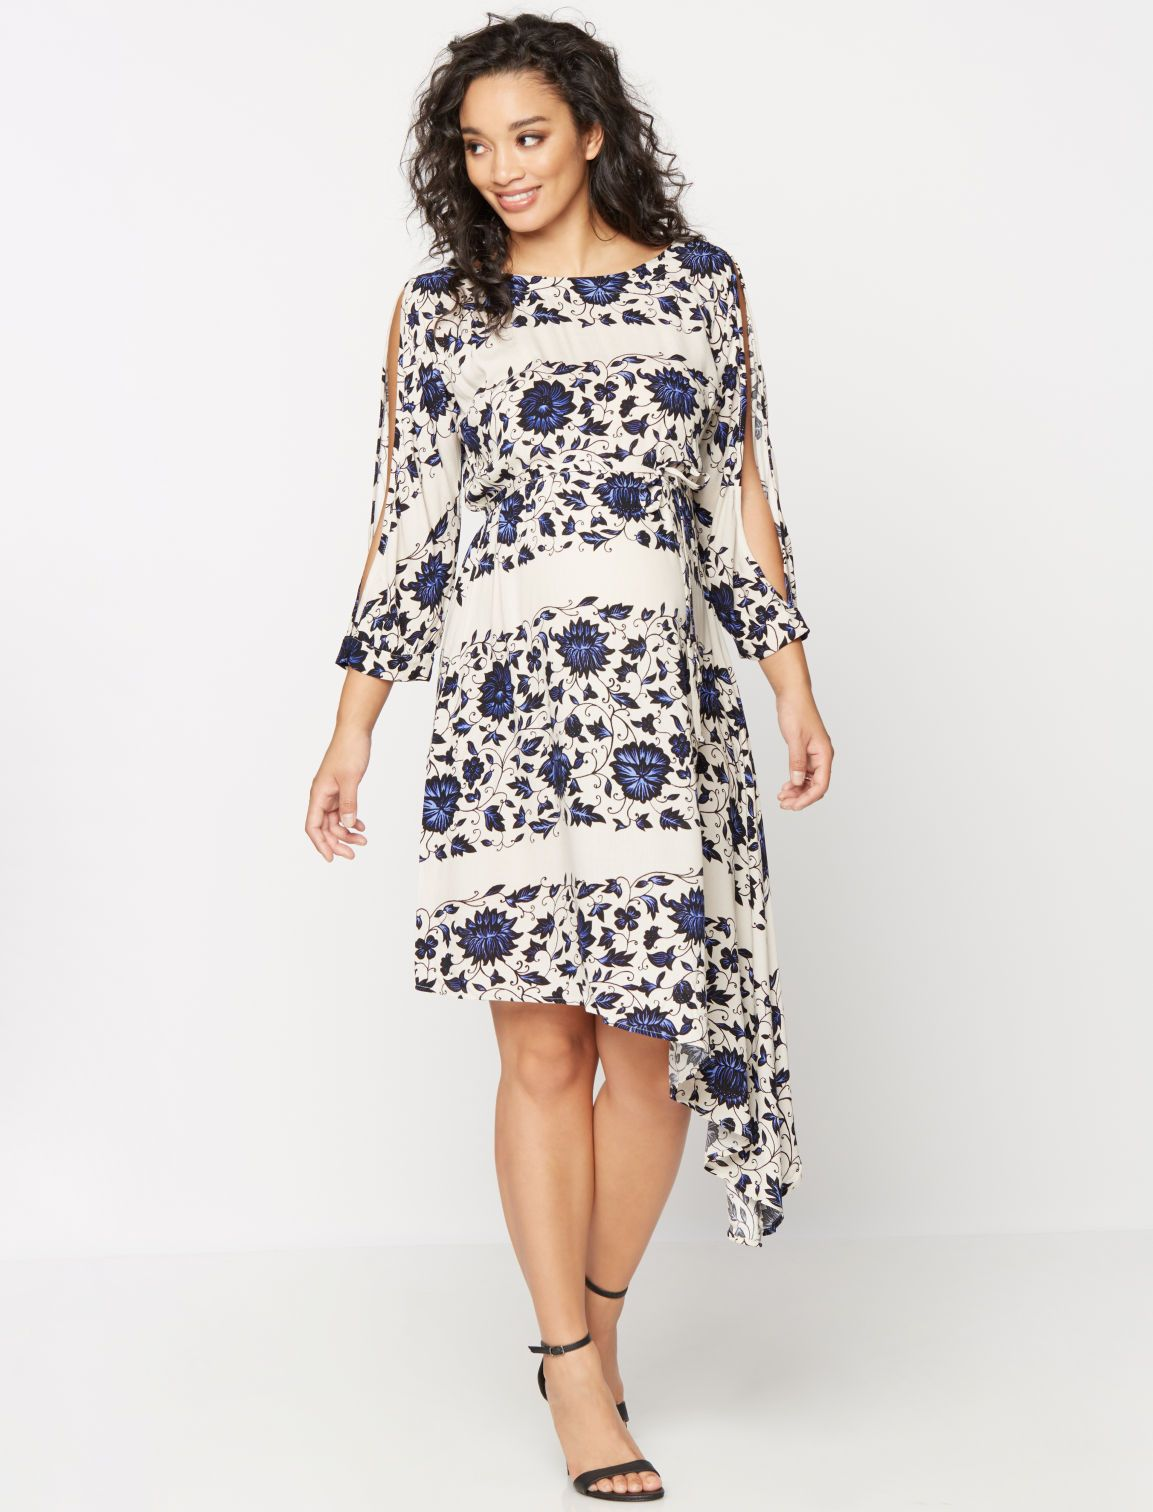 Stunning in floral 34 sleeve bias cut maternity dress by ella stunning in floral 34 sleeve bias cut maternity dress by ella moss available ombrellifo Images